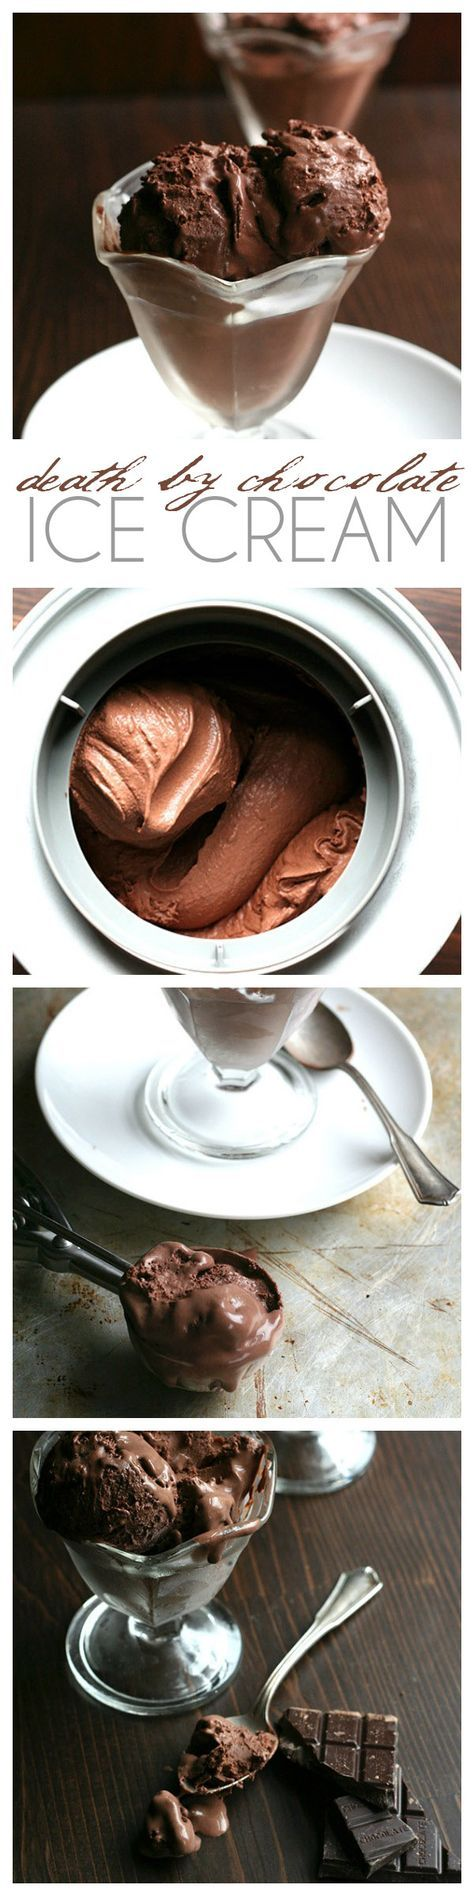 This is the best low carb chocolate ice cream recipe, hands down. For serious chocolate lovers, with rich dark chocolate flavour. No sugar and so creamy! Keto recipe